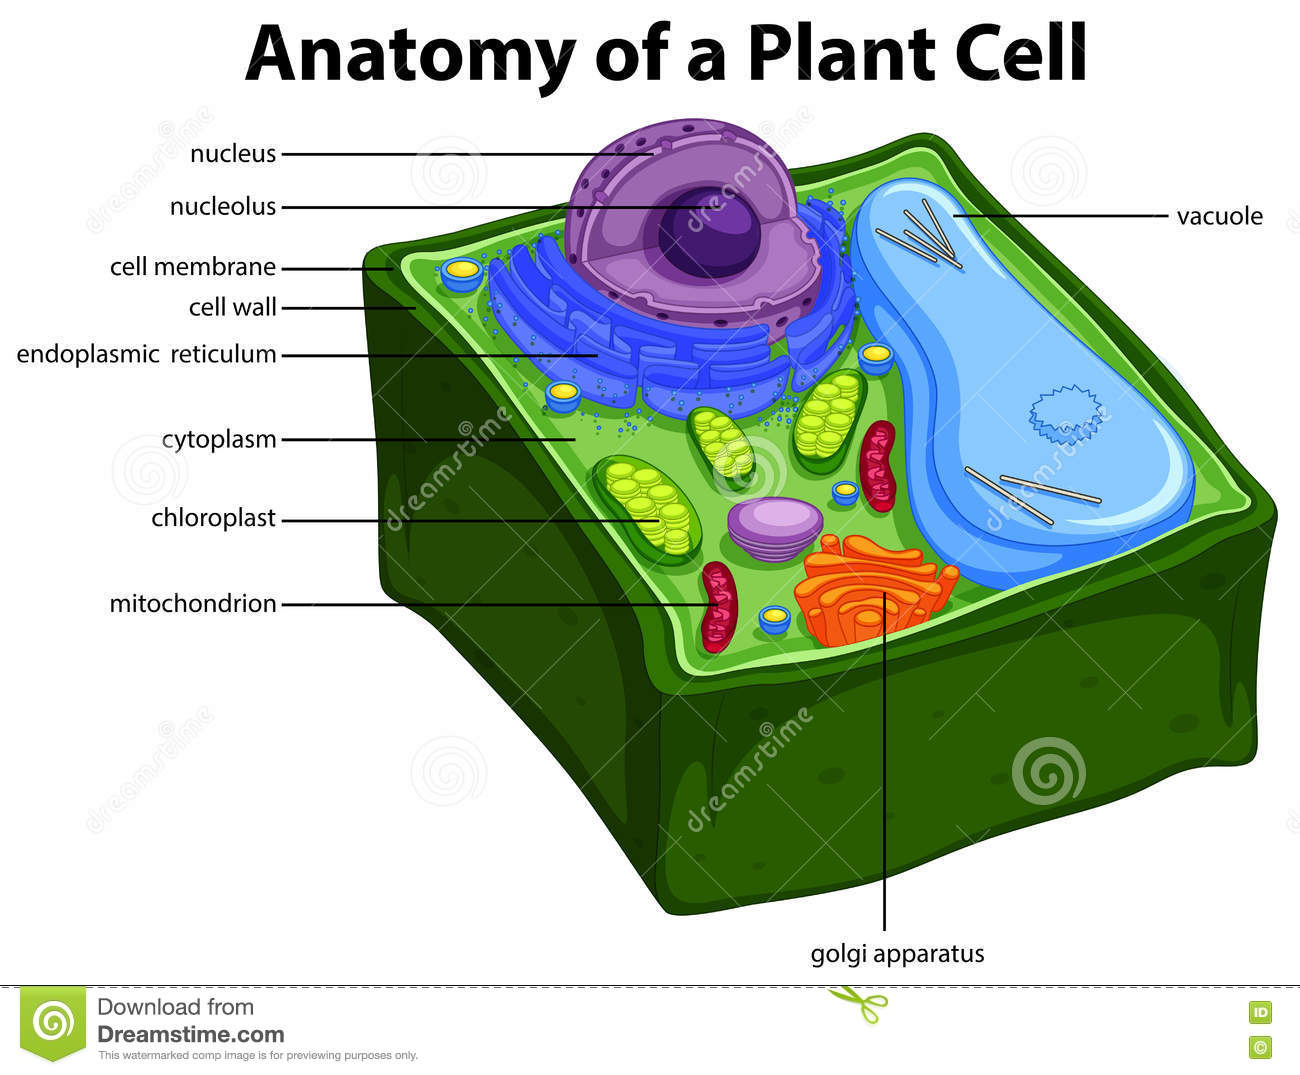 Diagram Showing Anatomy Of Plant Cell Stock Vector - Illustration of ...